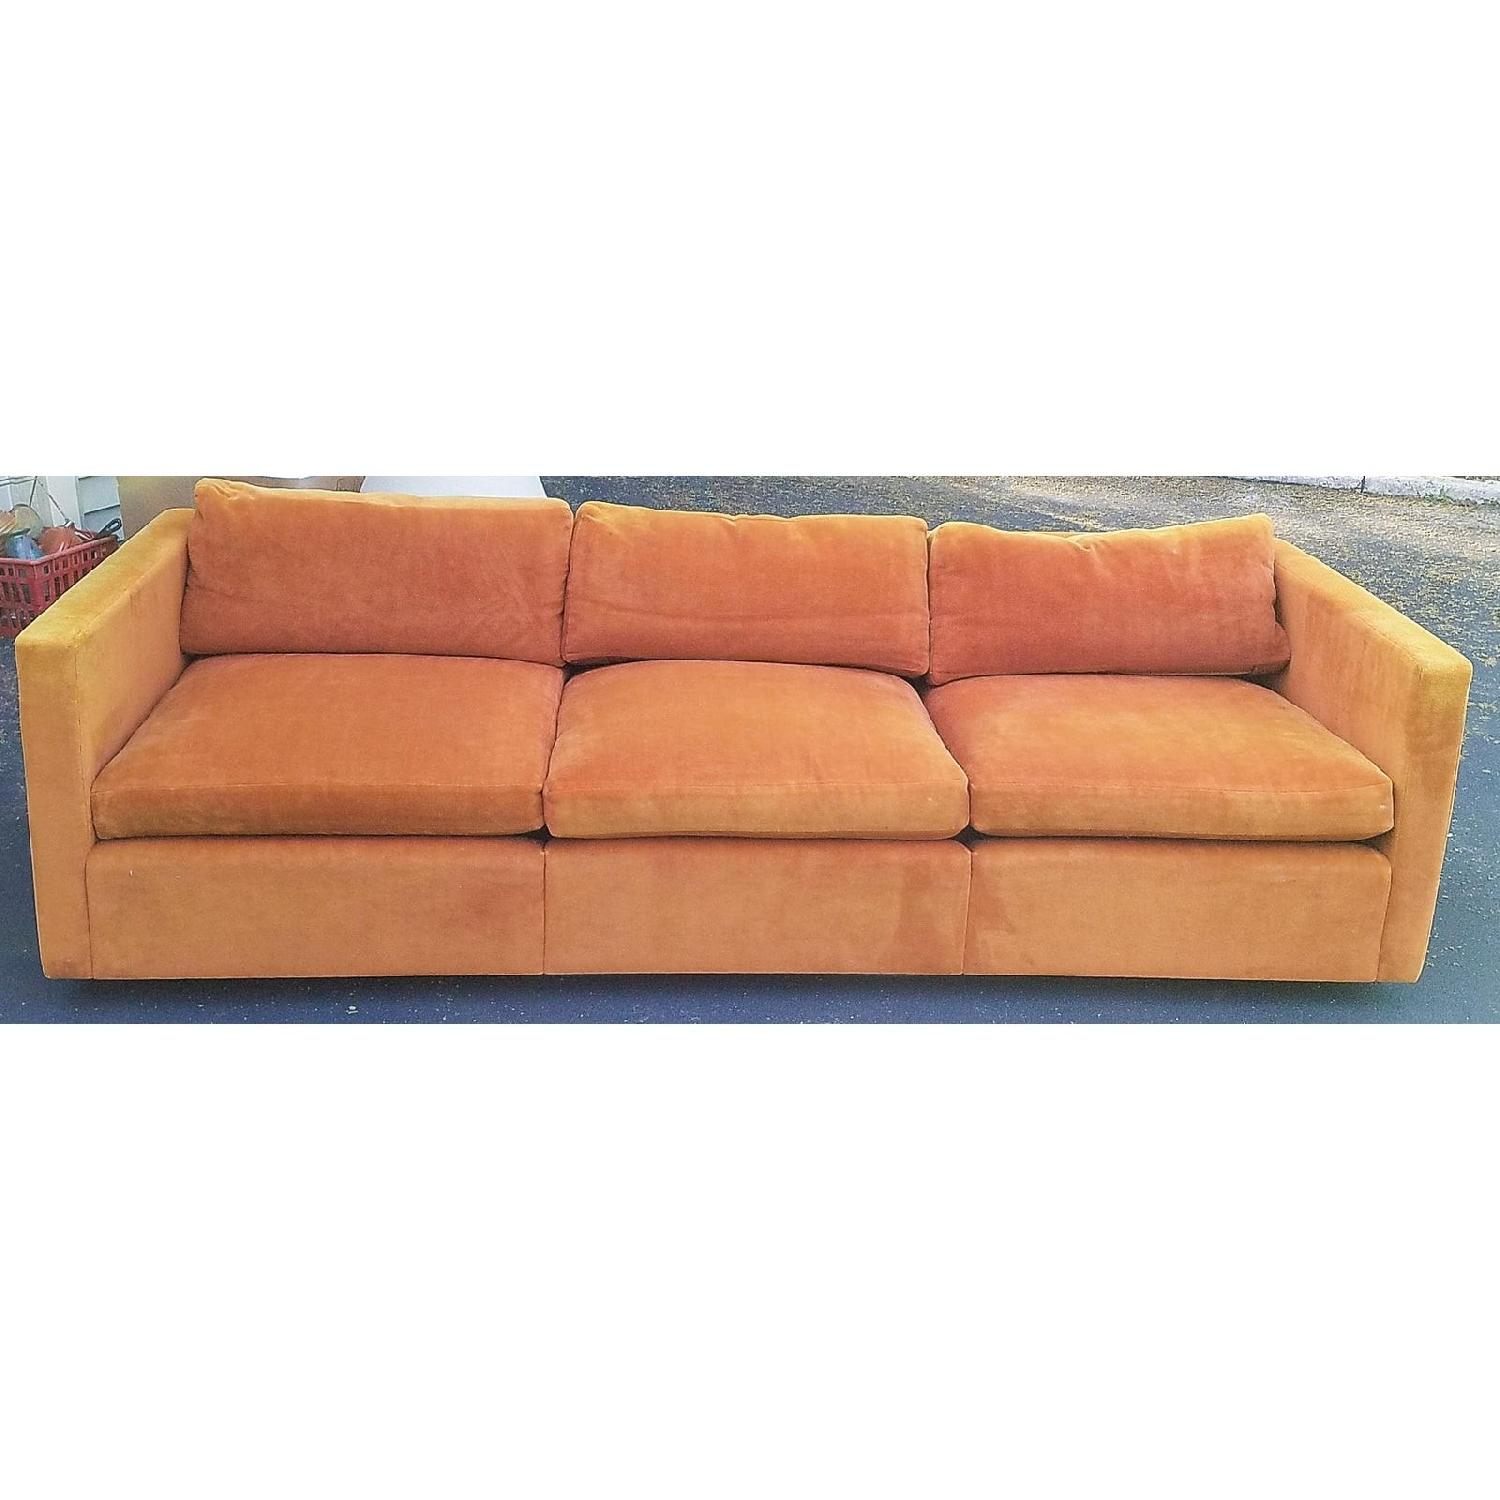 Groovy Knoll 1970S Mid Century Modern Burnt Orange Sofa Aptdeco Machost Co Dining Chair Design Ideas Machostcouk